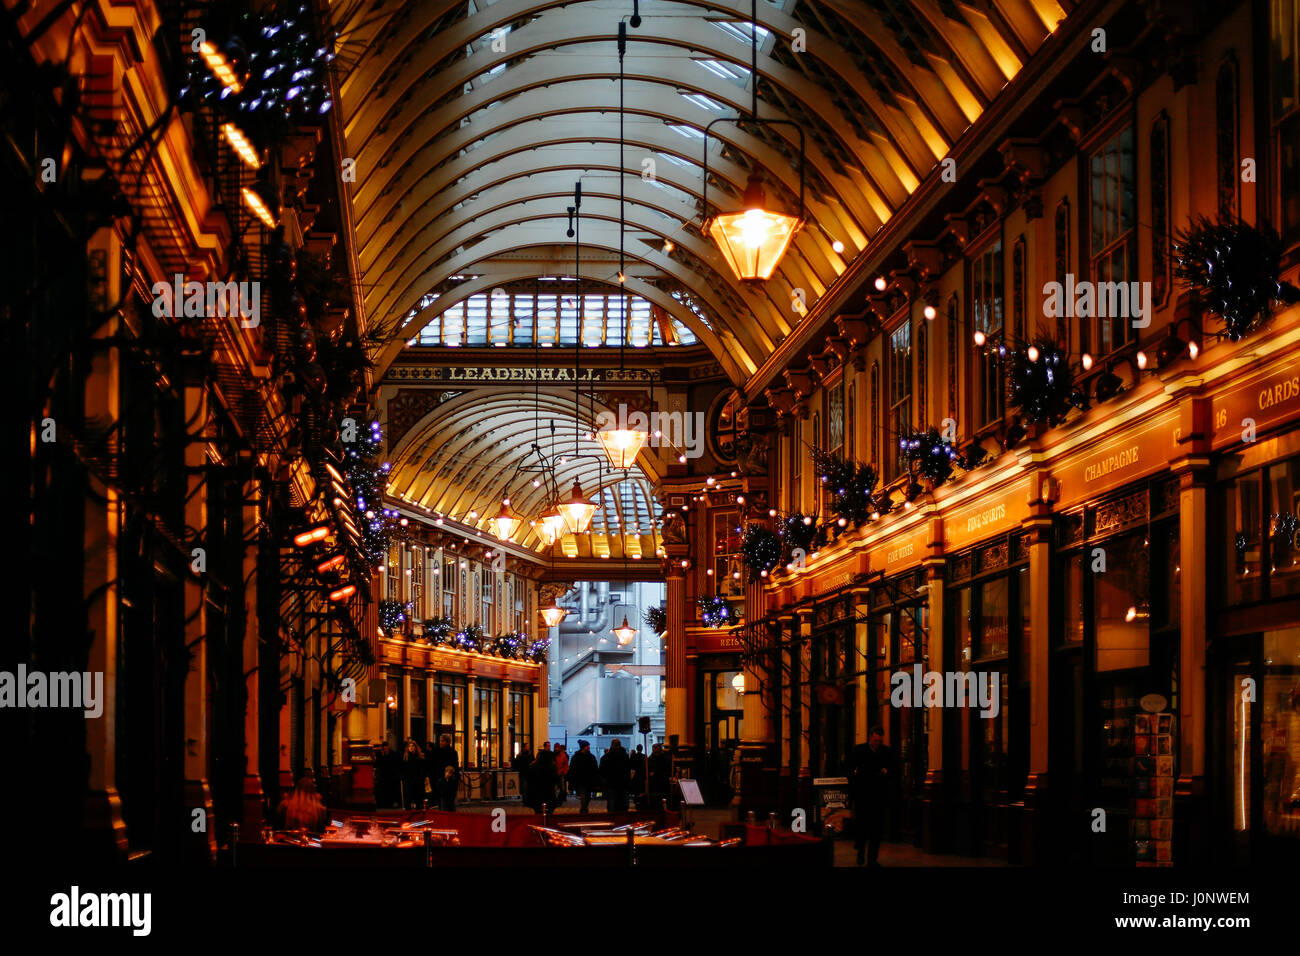 Passage and shops inside Leadenhall Market, popular market in London that was built in the 19th century. - Stock Image